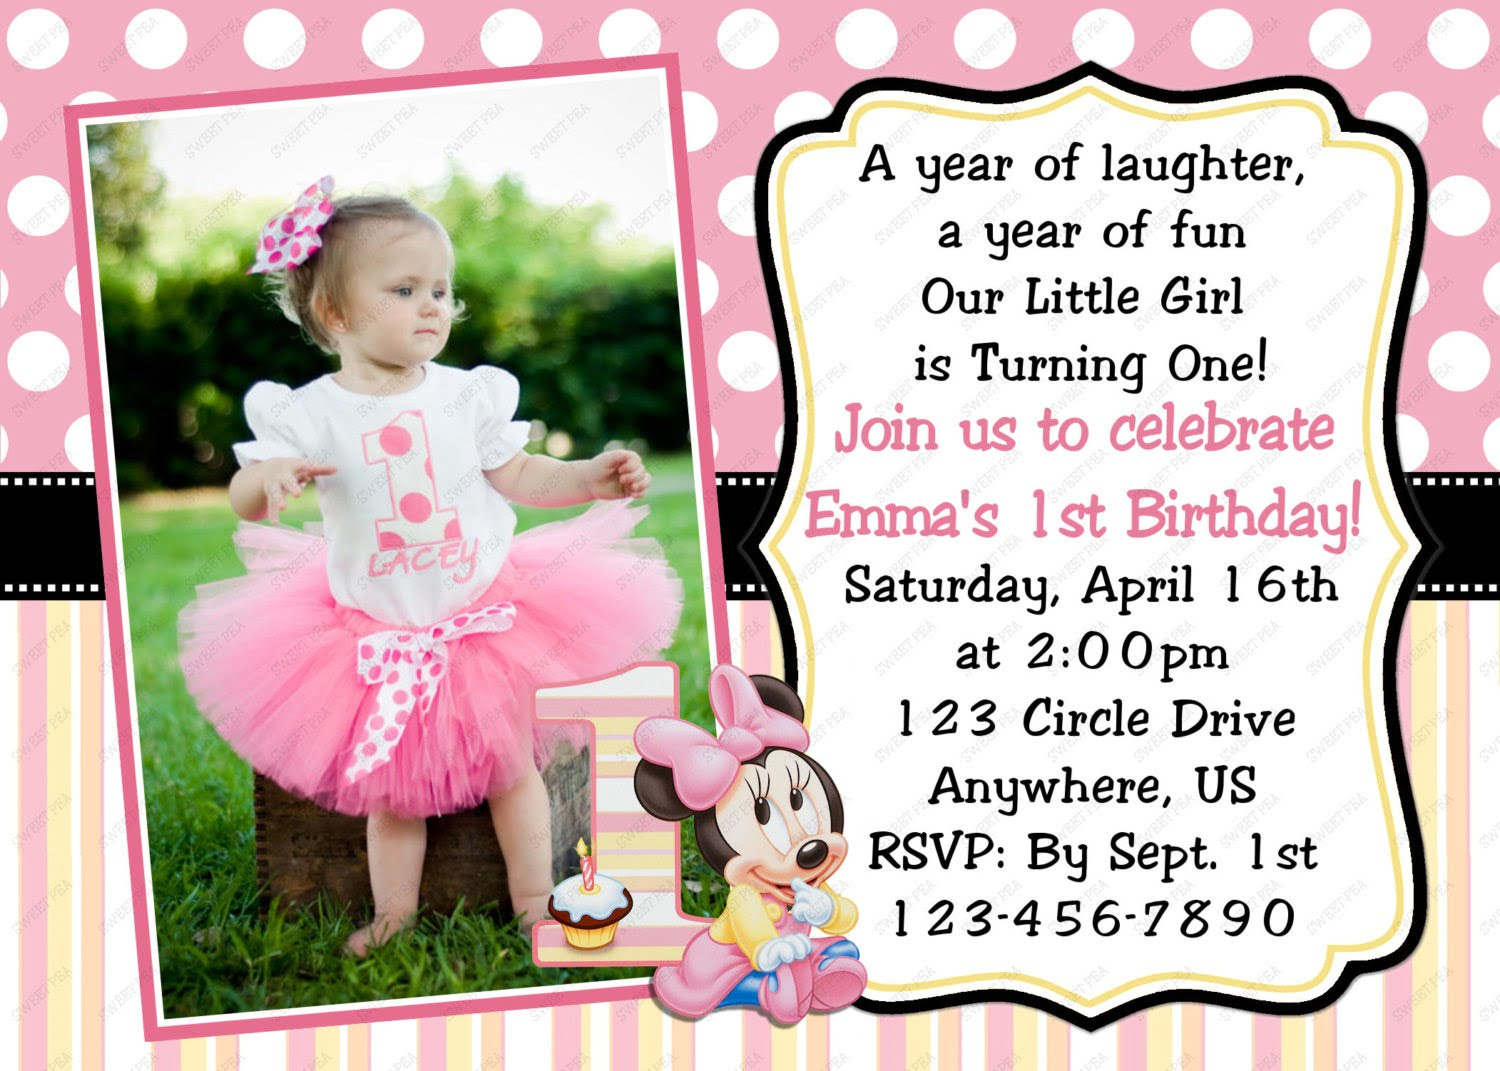 Minnie Mouse St Birthday Invitations Template Cixksqh Superb 1st